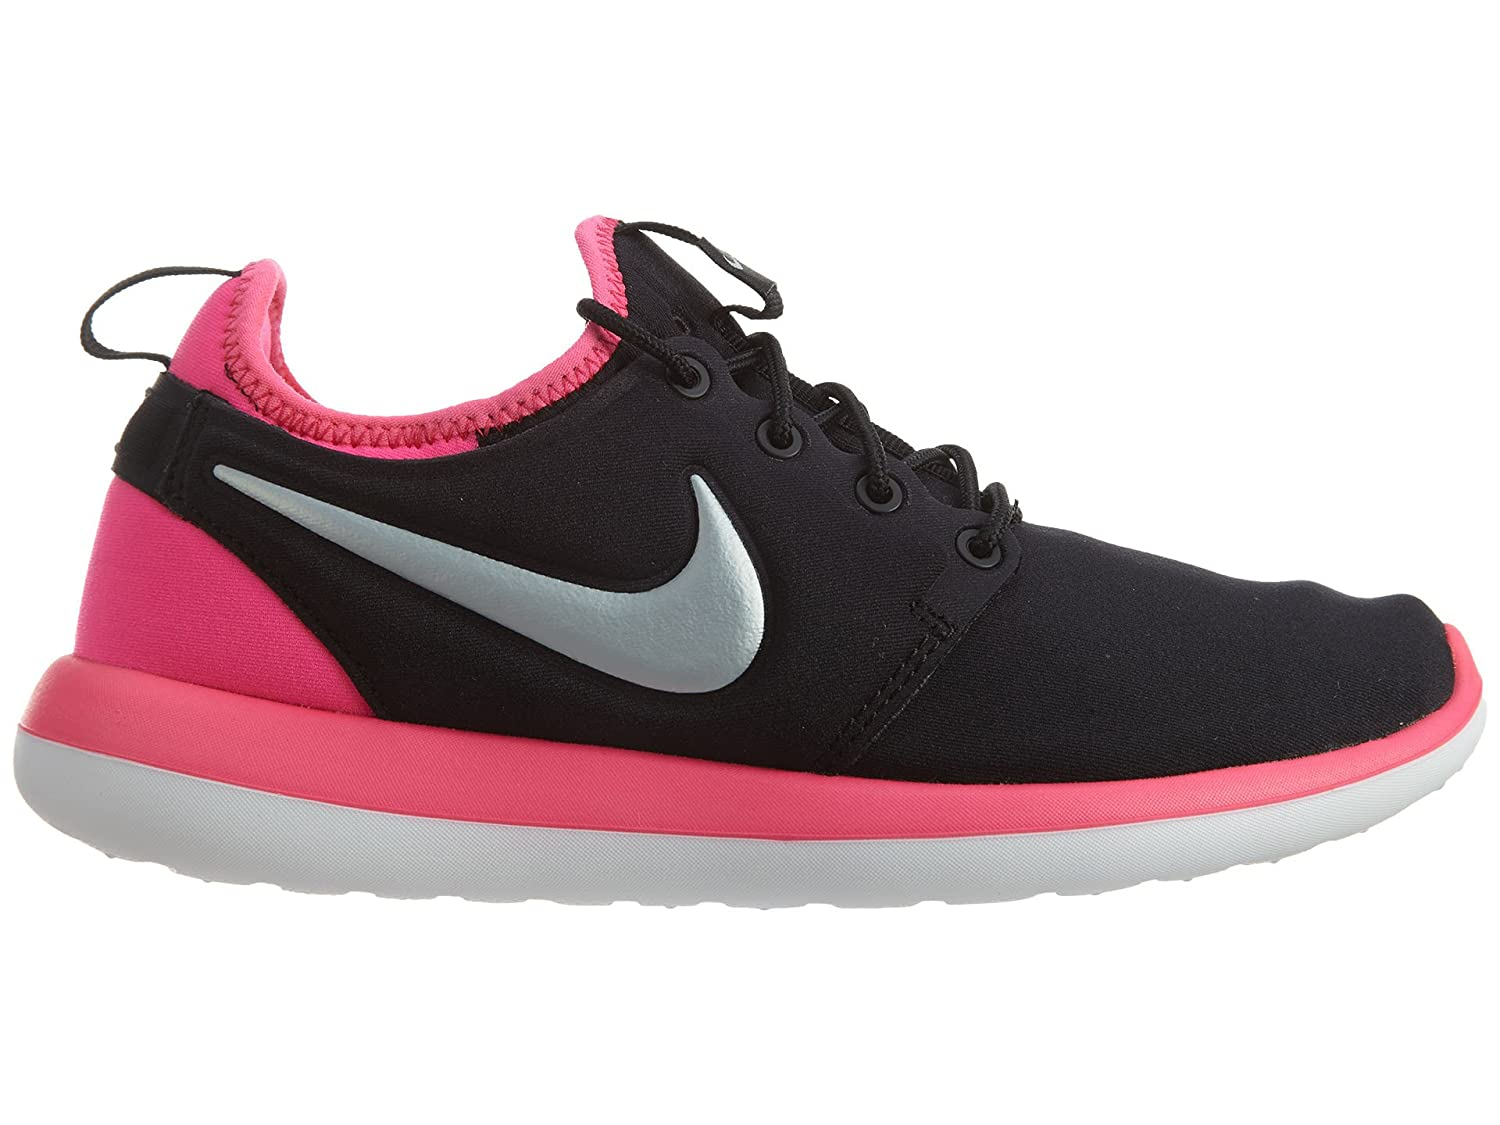 57543f765d3c1 Nike Roshe Two Big Kids Style  844655-001 Size  4 Y US  Buy Online at Low  Prices in India - Amazon.in